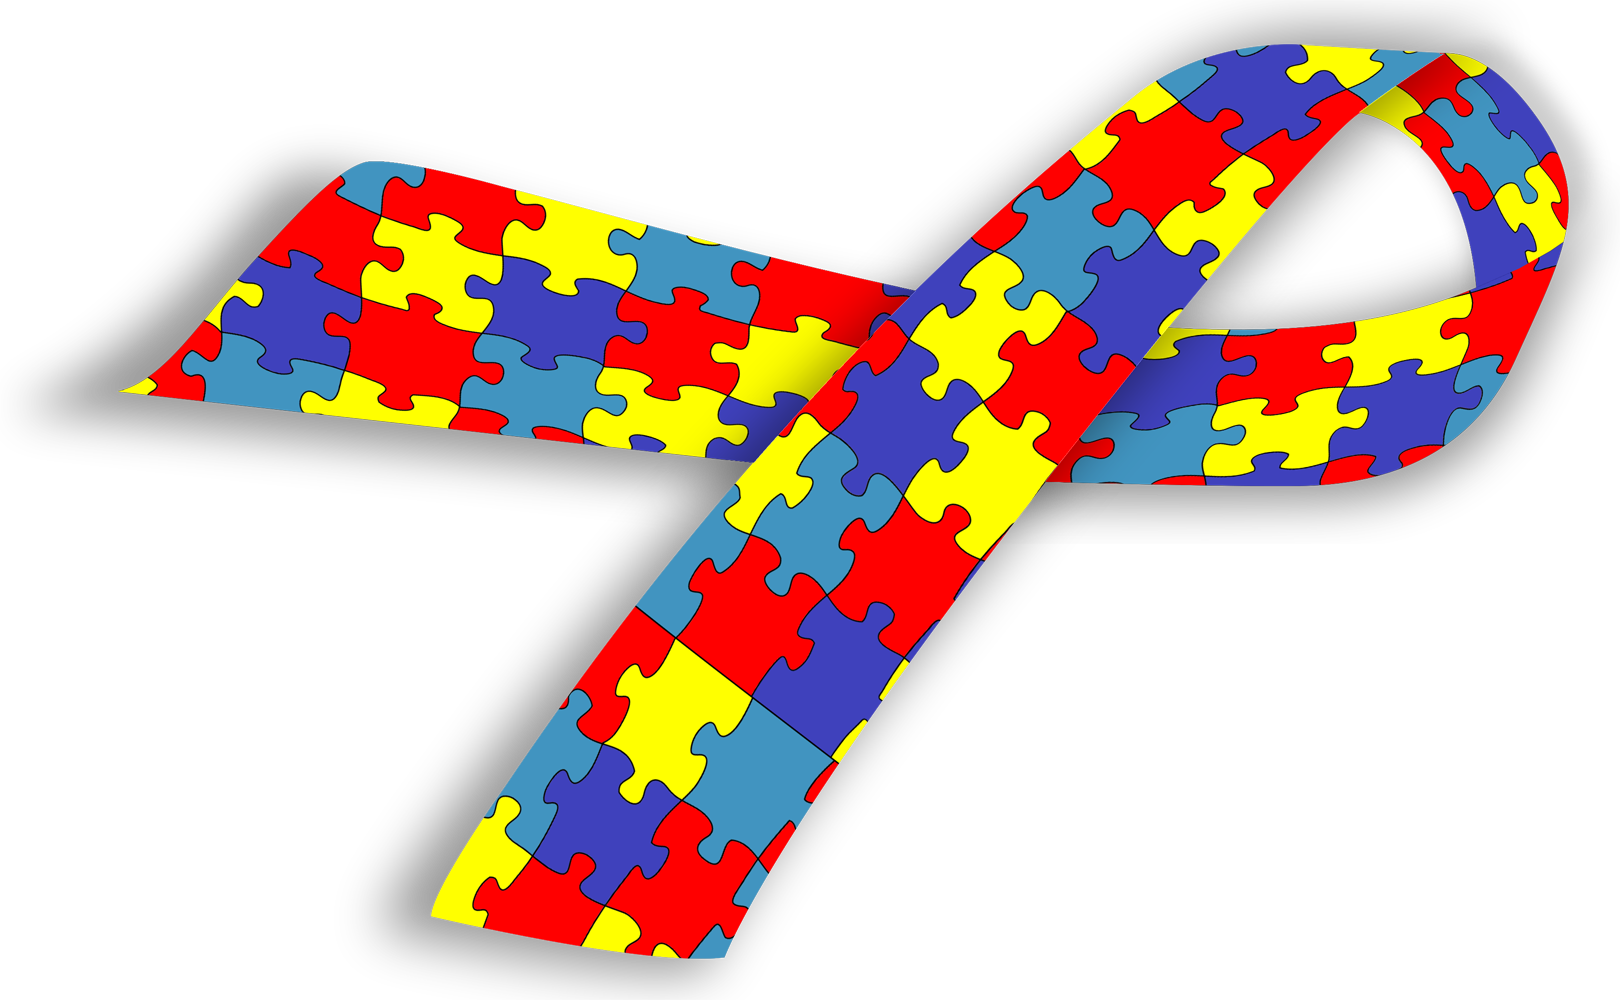 Autism heart clipart freeuse 28+ Collection of Autism Ribbon Clipart | High quality, free ... freeuse